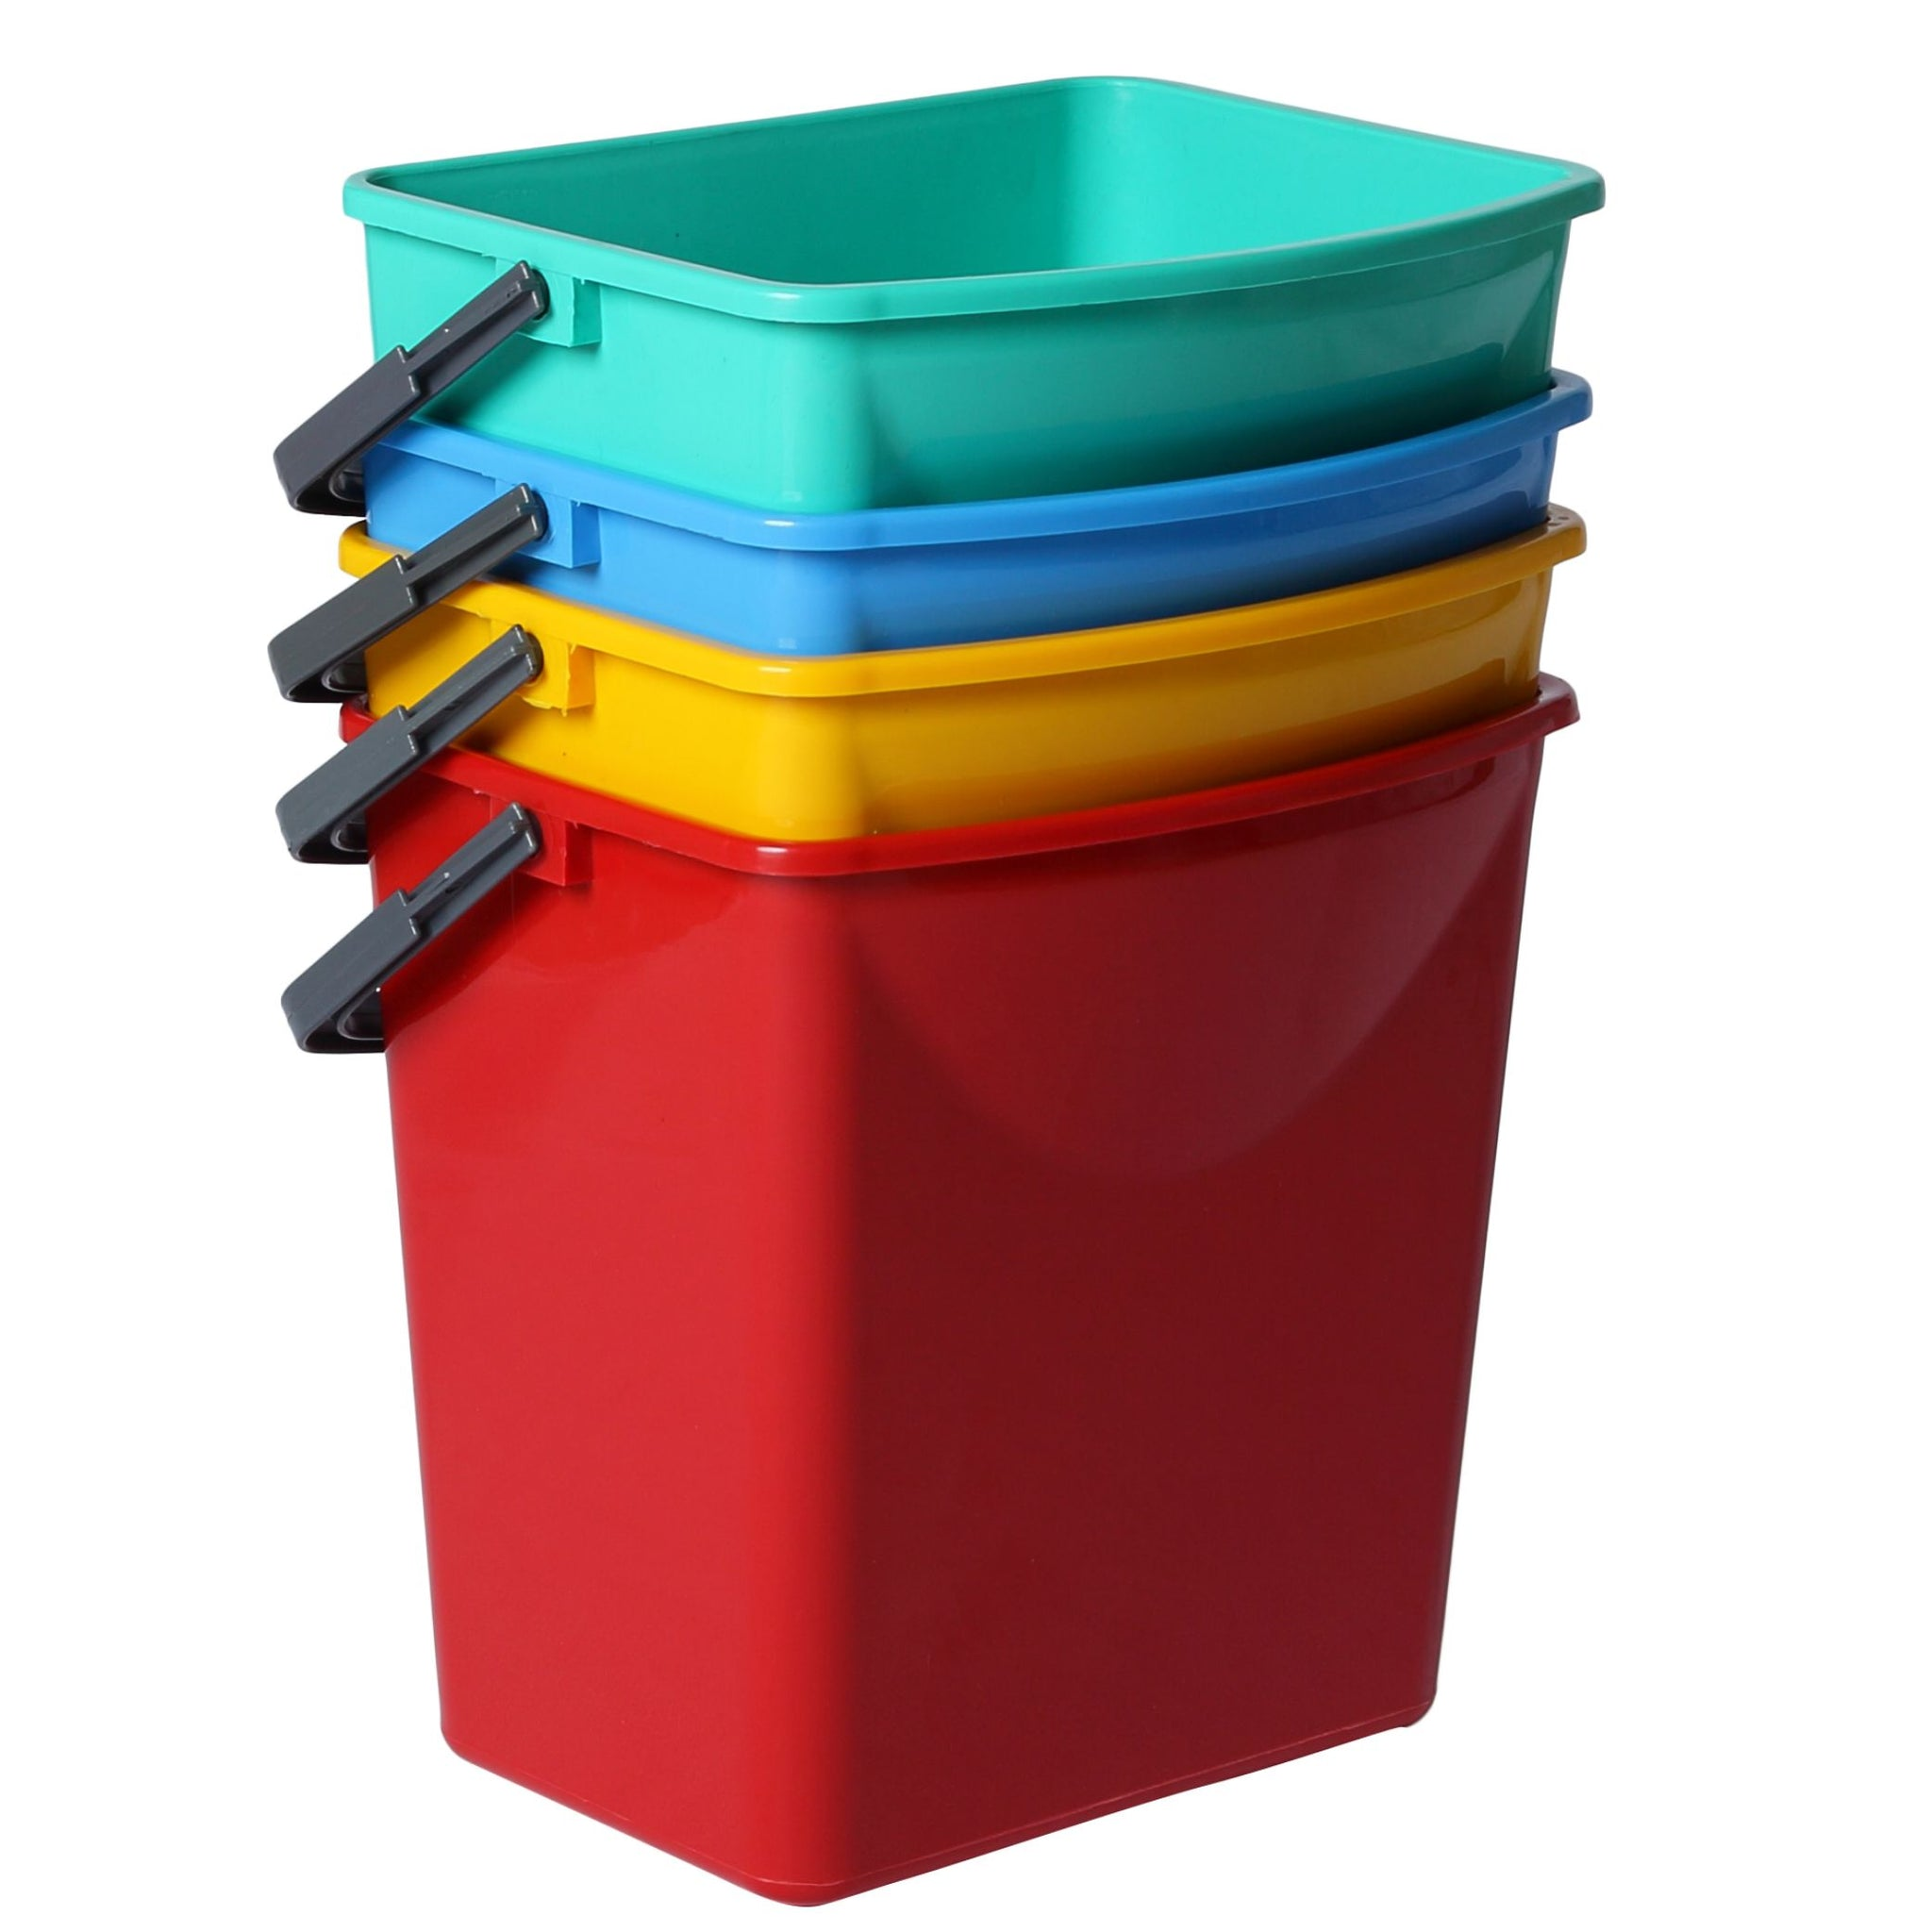 BUCKET 5L FOR JANITOR CART ADVANCE